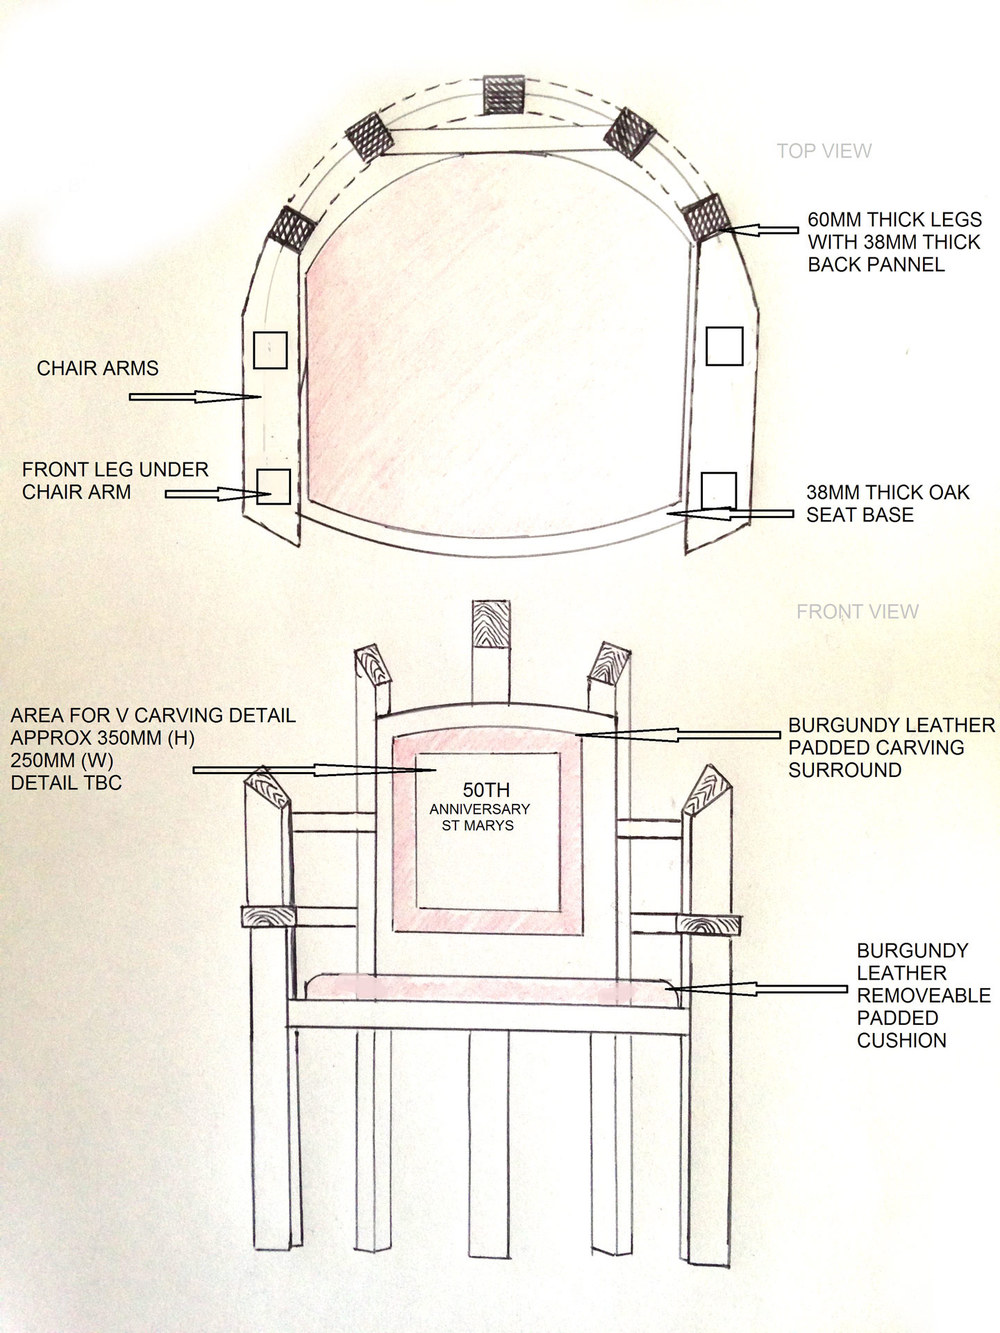 Sketch showing the design of the Presidential chair